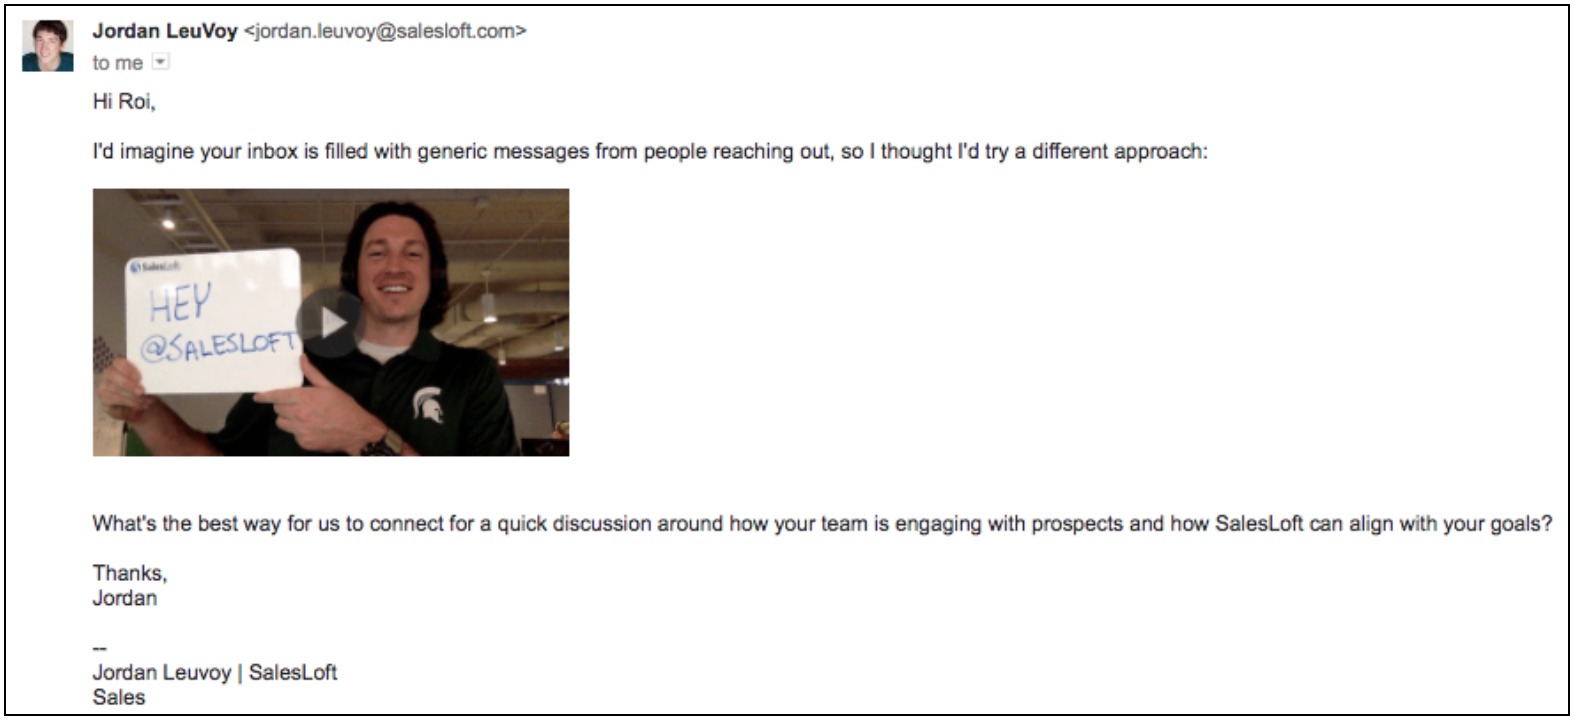 Example of a positive match for a video email in our experiment